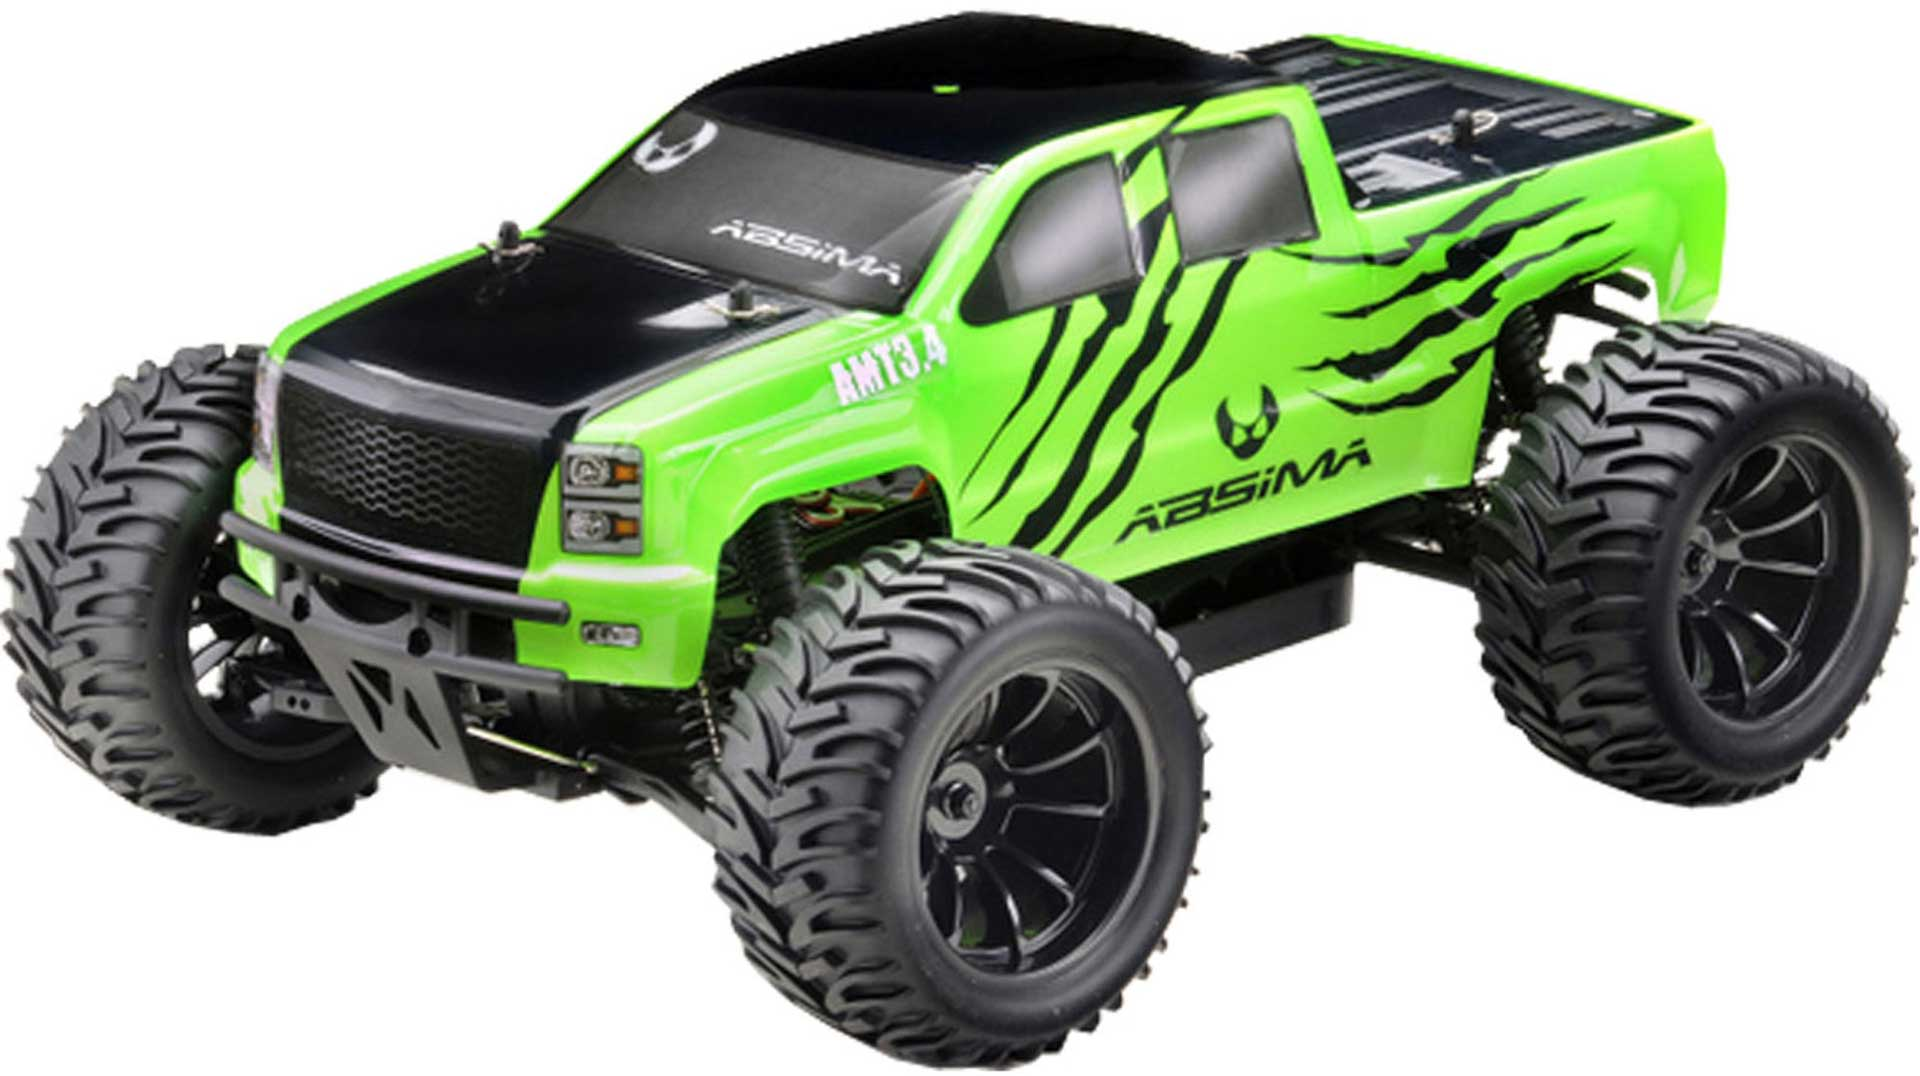 ABSIMA AMT3.4 MONSTER TRUCK 4WD RTR 1/10